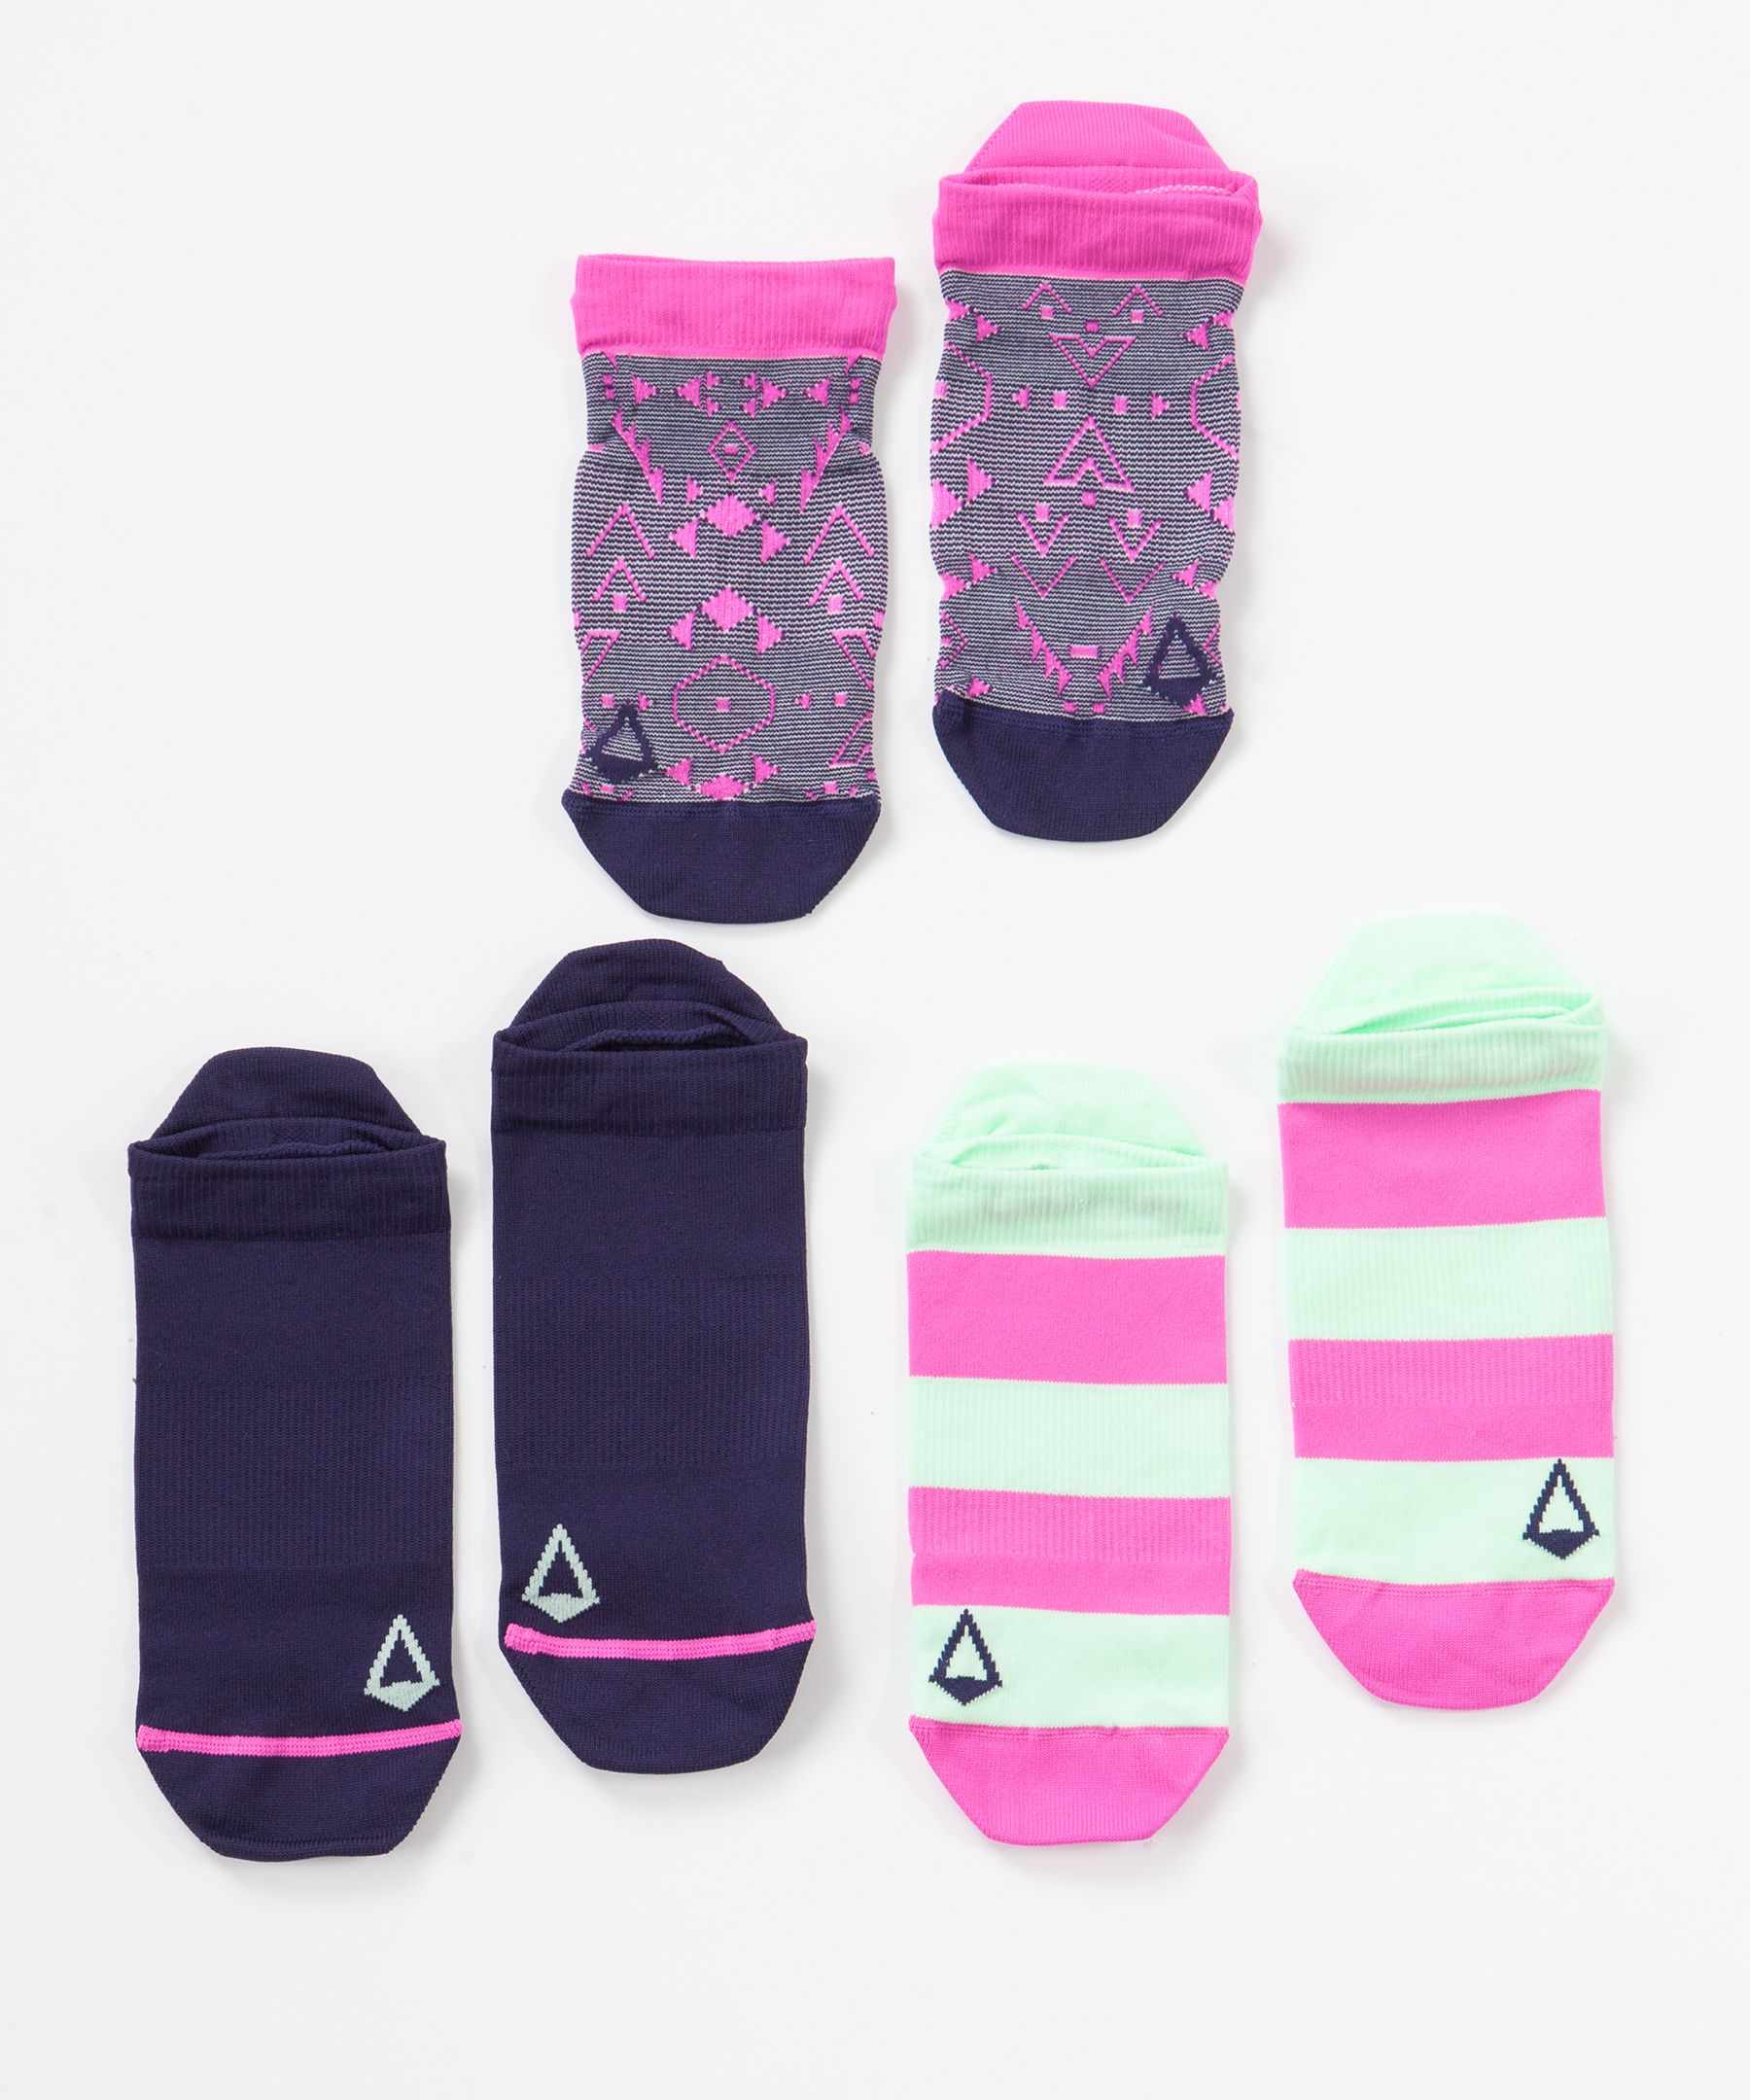 Mix and match these  lightweight, naturally  breathable socks to create  your own look at school or  practice.